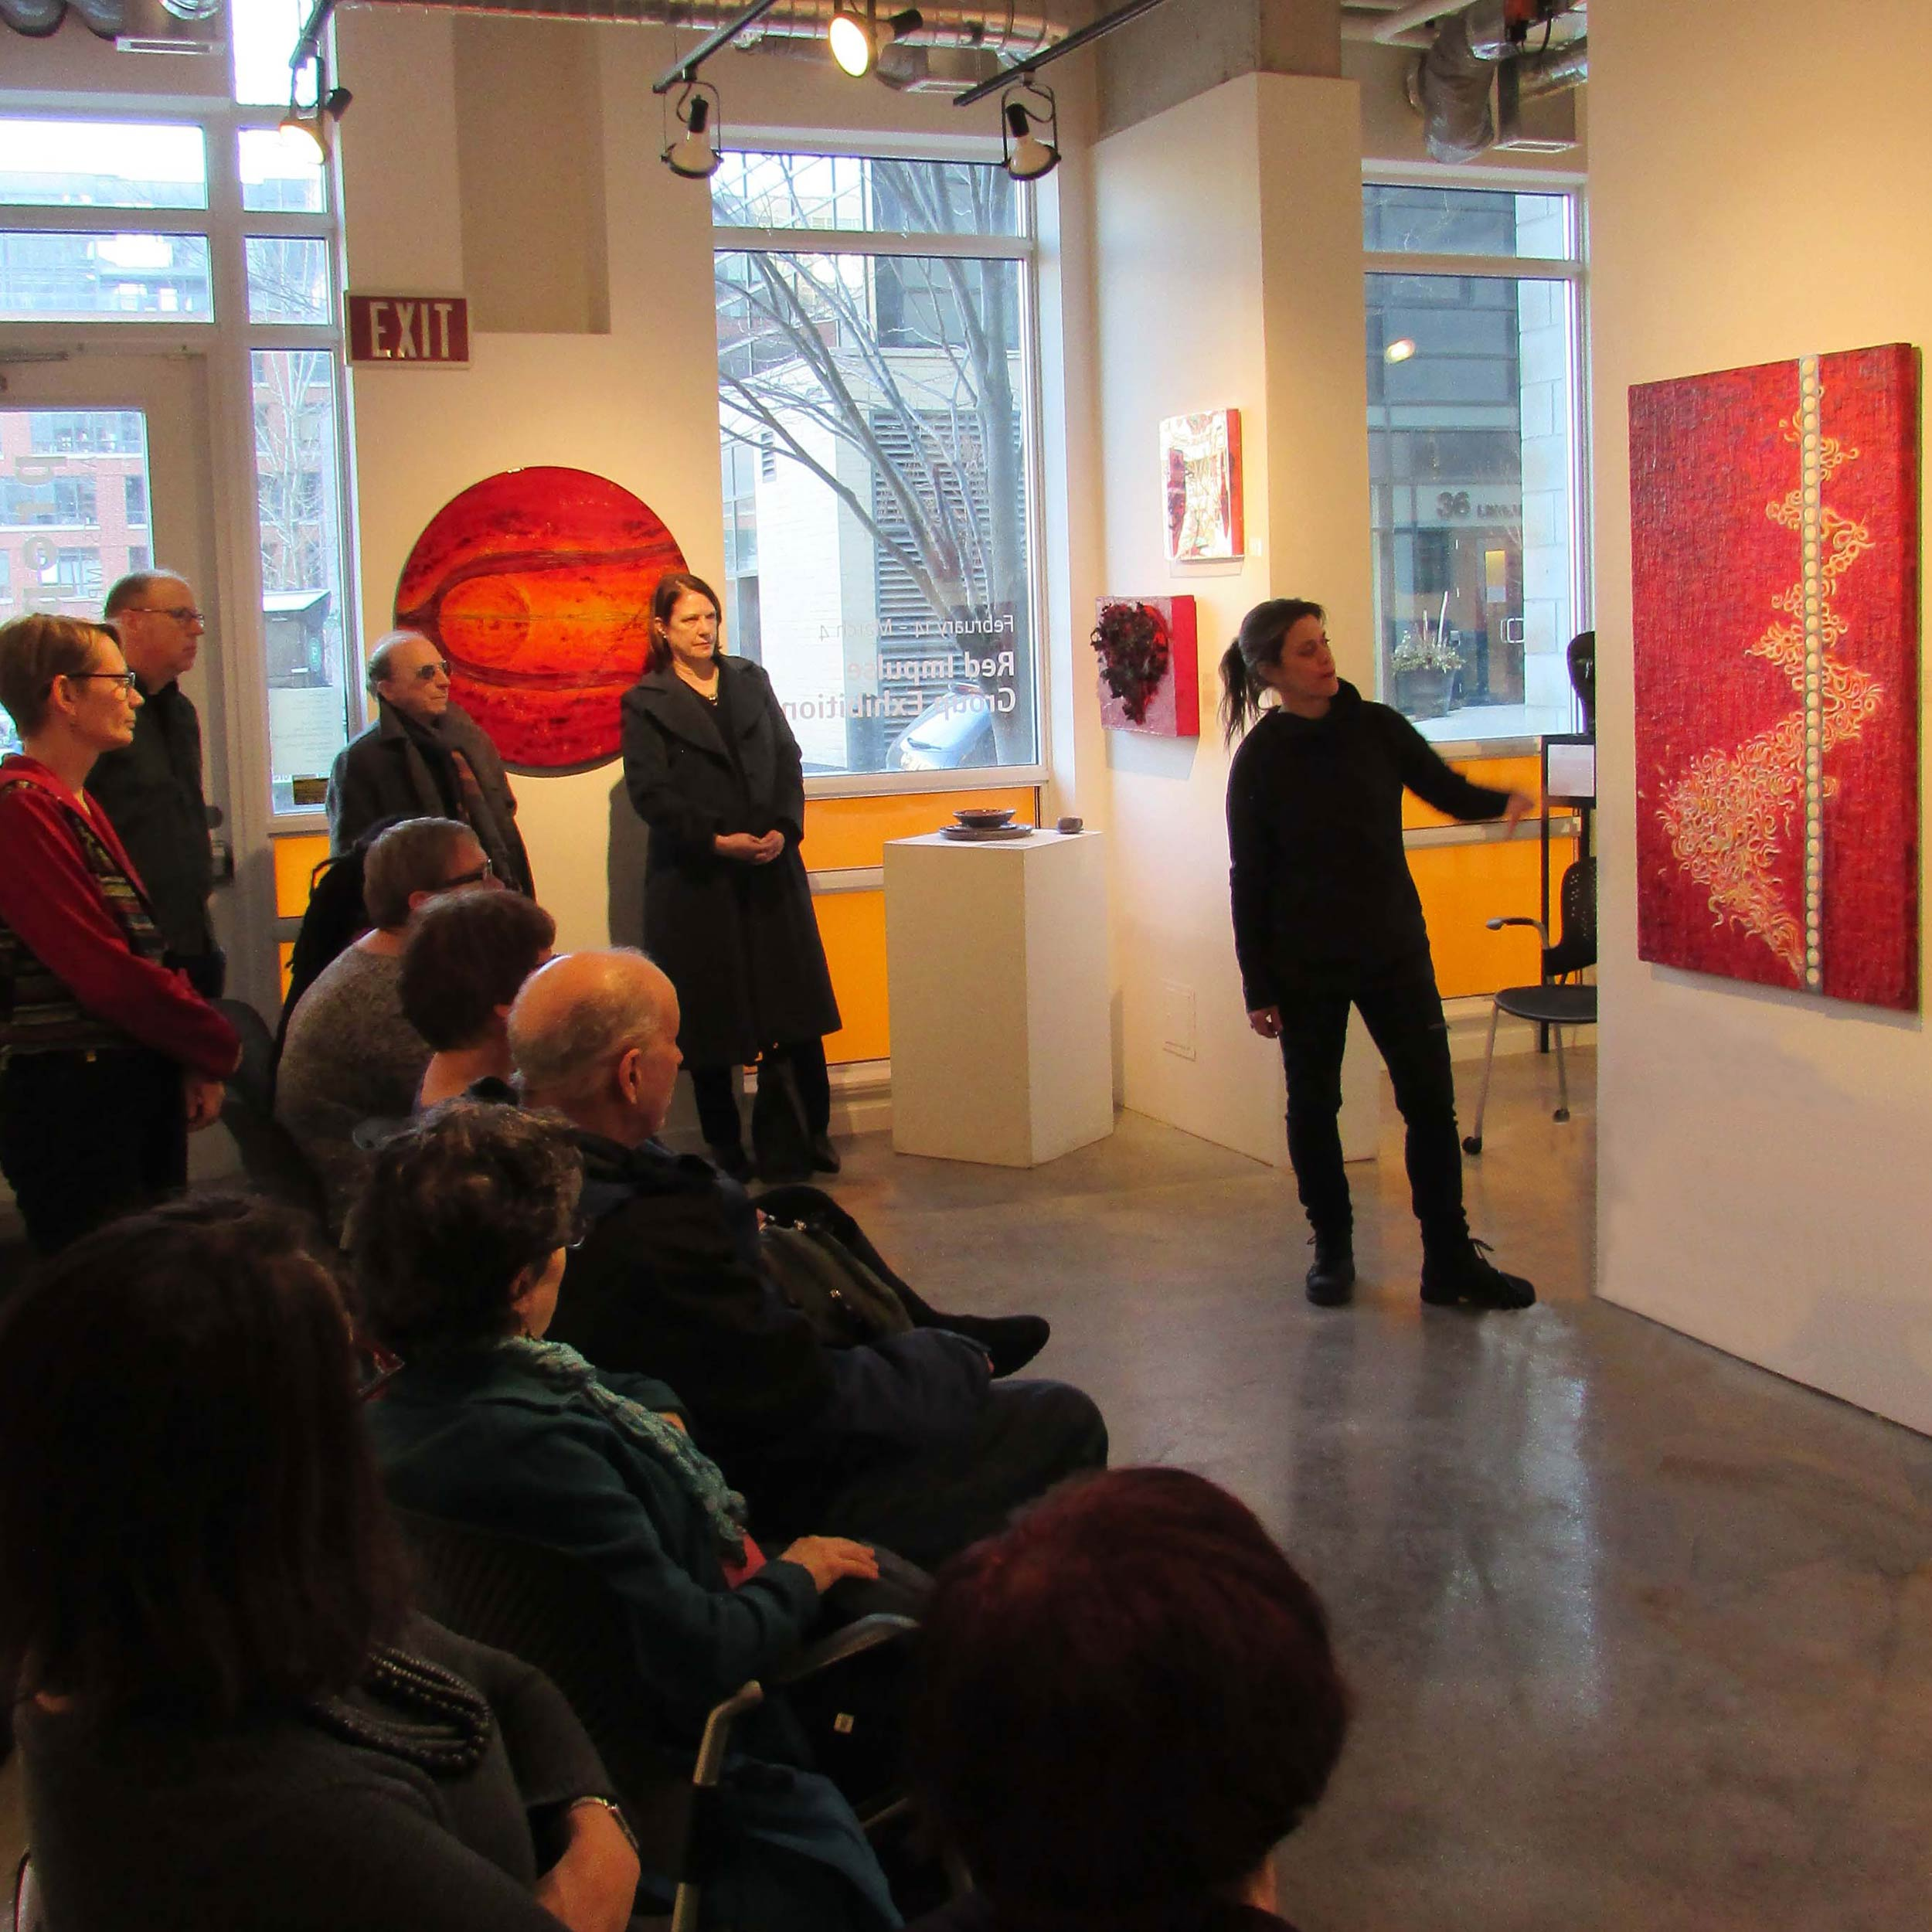 Amanta Scott speaks about her work at Propeller Gallery, Toronto, in Red Impulse exhibition     Alchemy   , Amanta Scott, Encaustic painting with stainless steel on birch panel, 48 x 30 x 2 inches